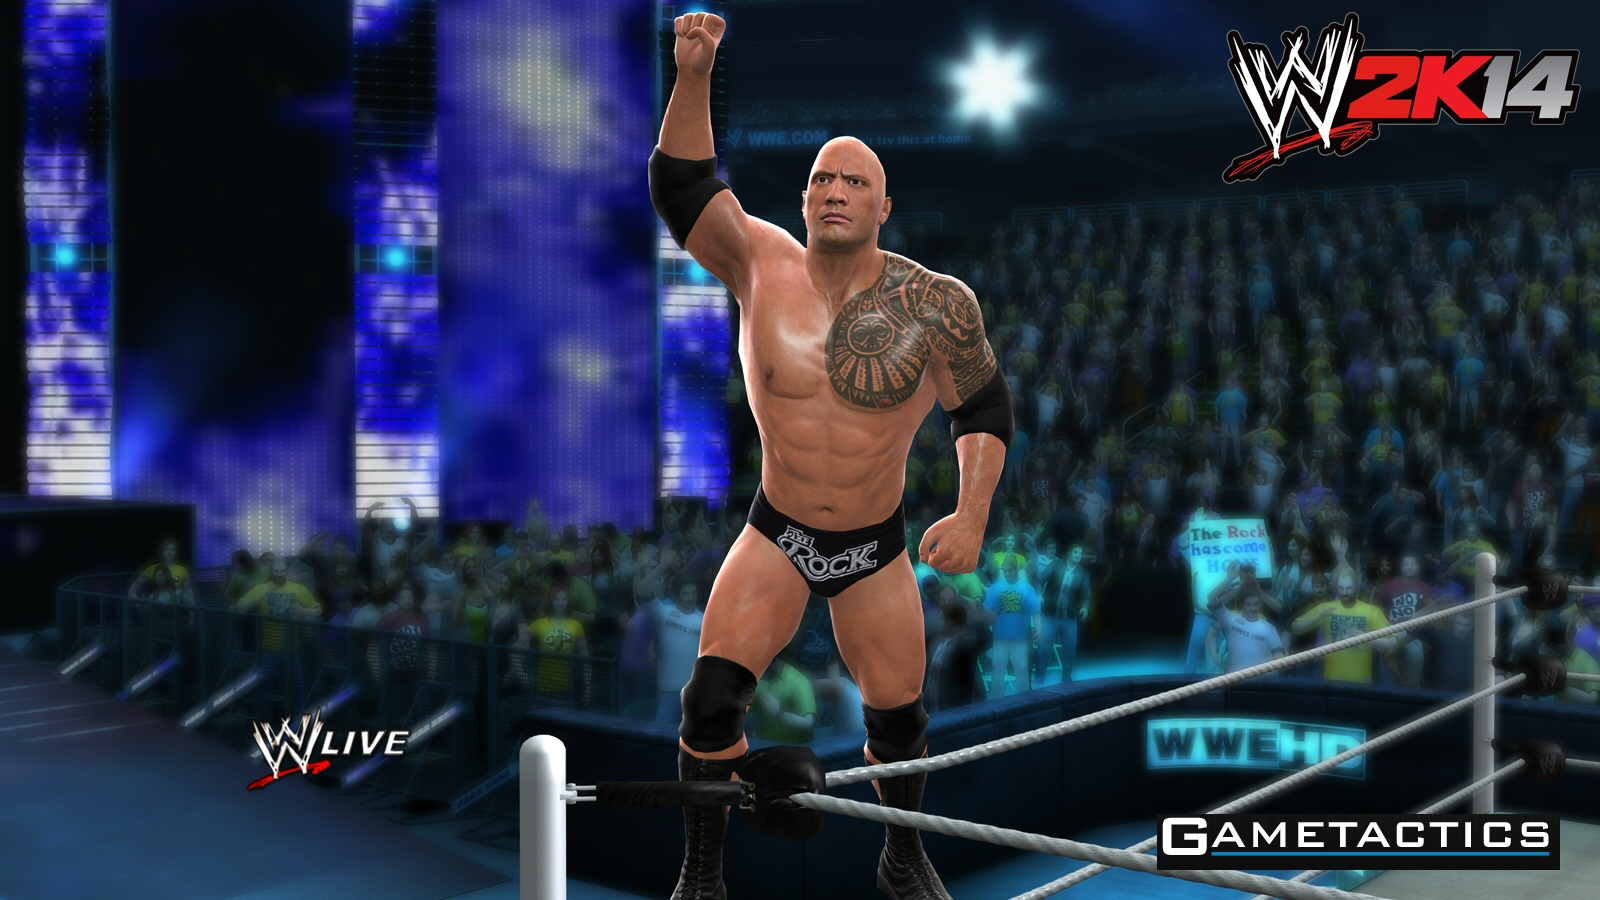 2k releases all-new wwe 2k14 screenshots featuring cover athlete the